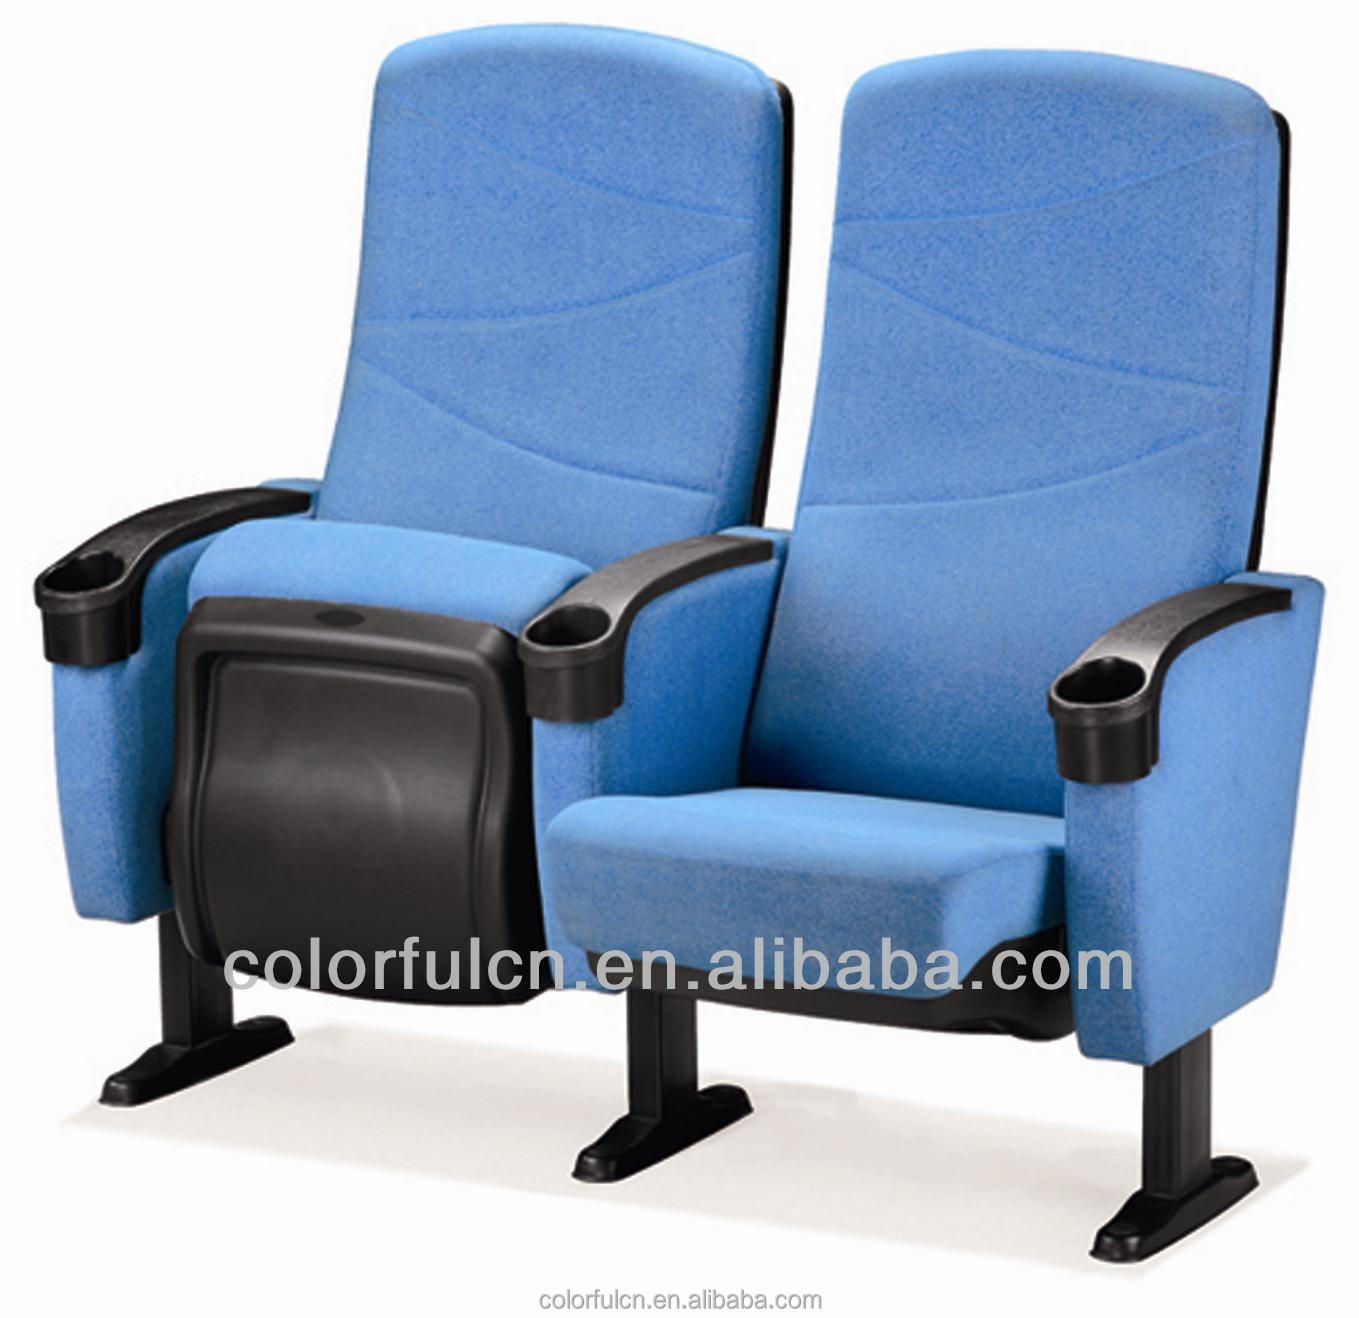 Home Theater Chair 5d Model Cinema Chair (ya-240) - Buy Home Theater Chair  3d Model,Wholesale Church Chair,Church Auditorium Chairs Product on